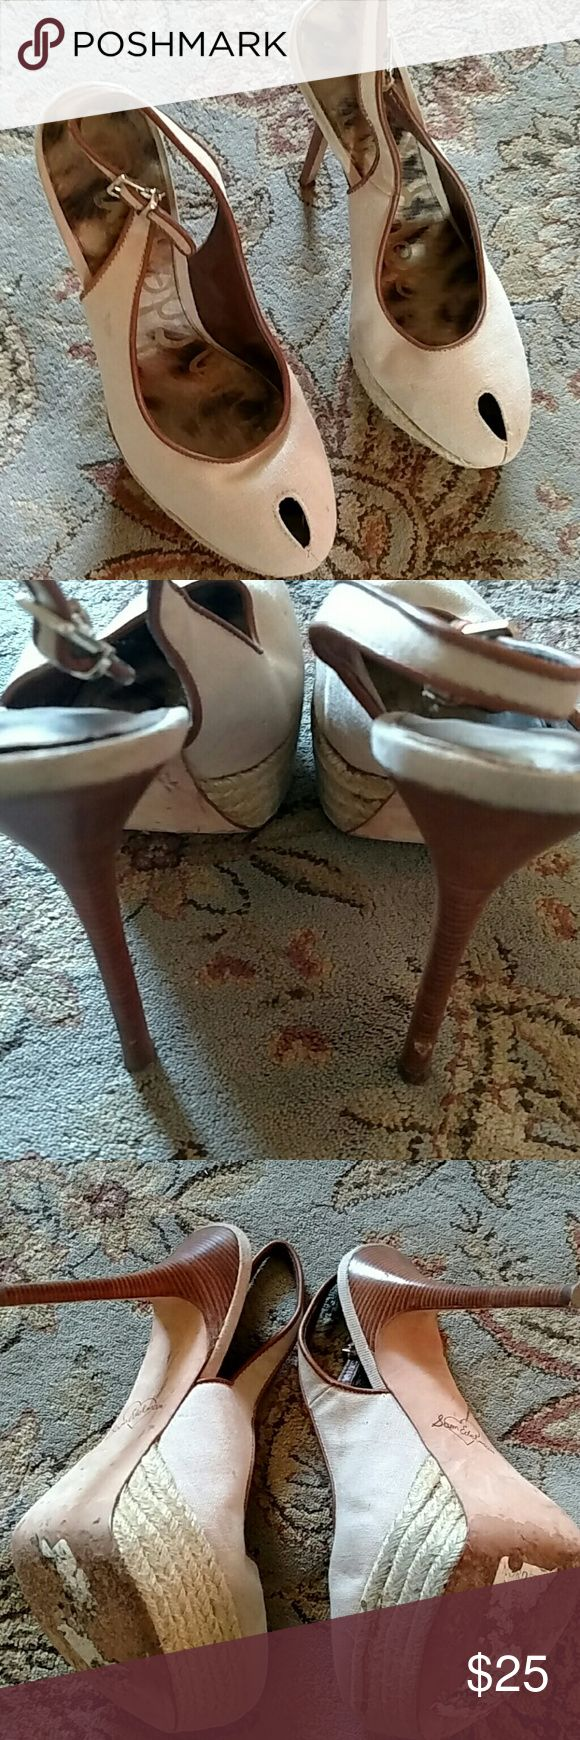 Sam Edelman heels Worn twice. Small flaw in right heel (see pic) Shoes Heels